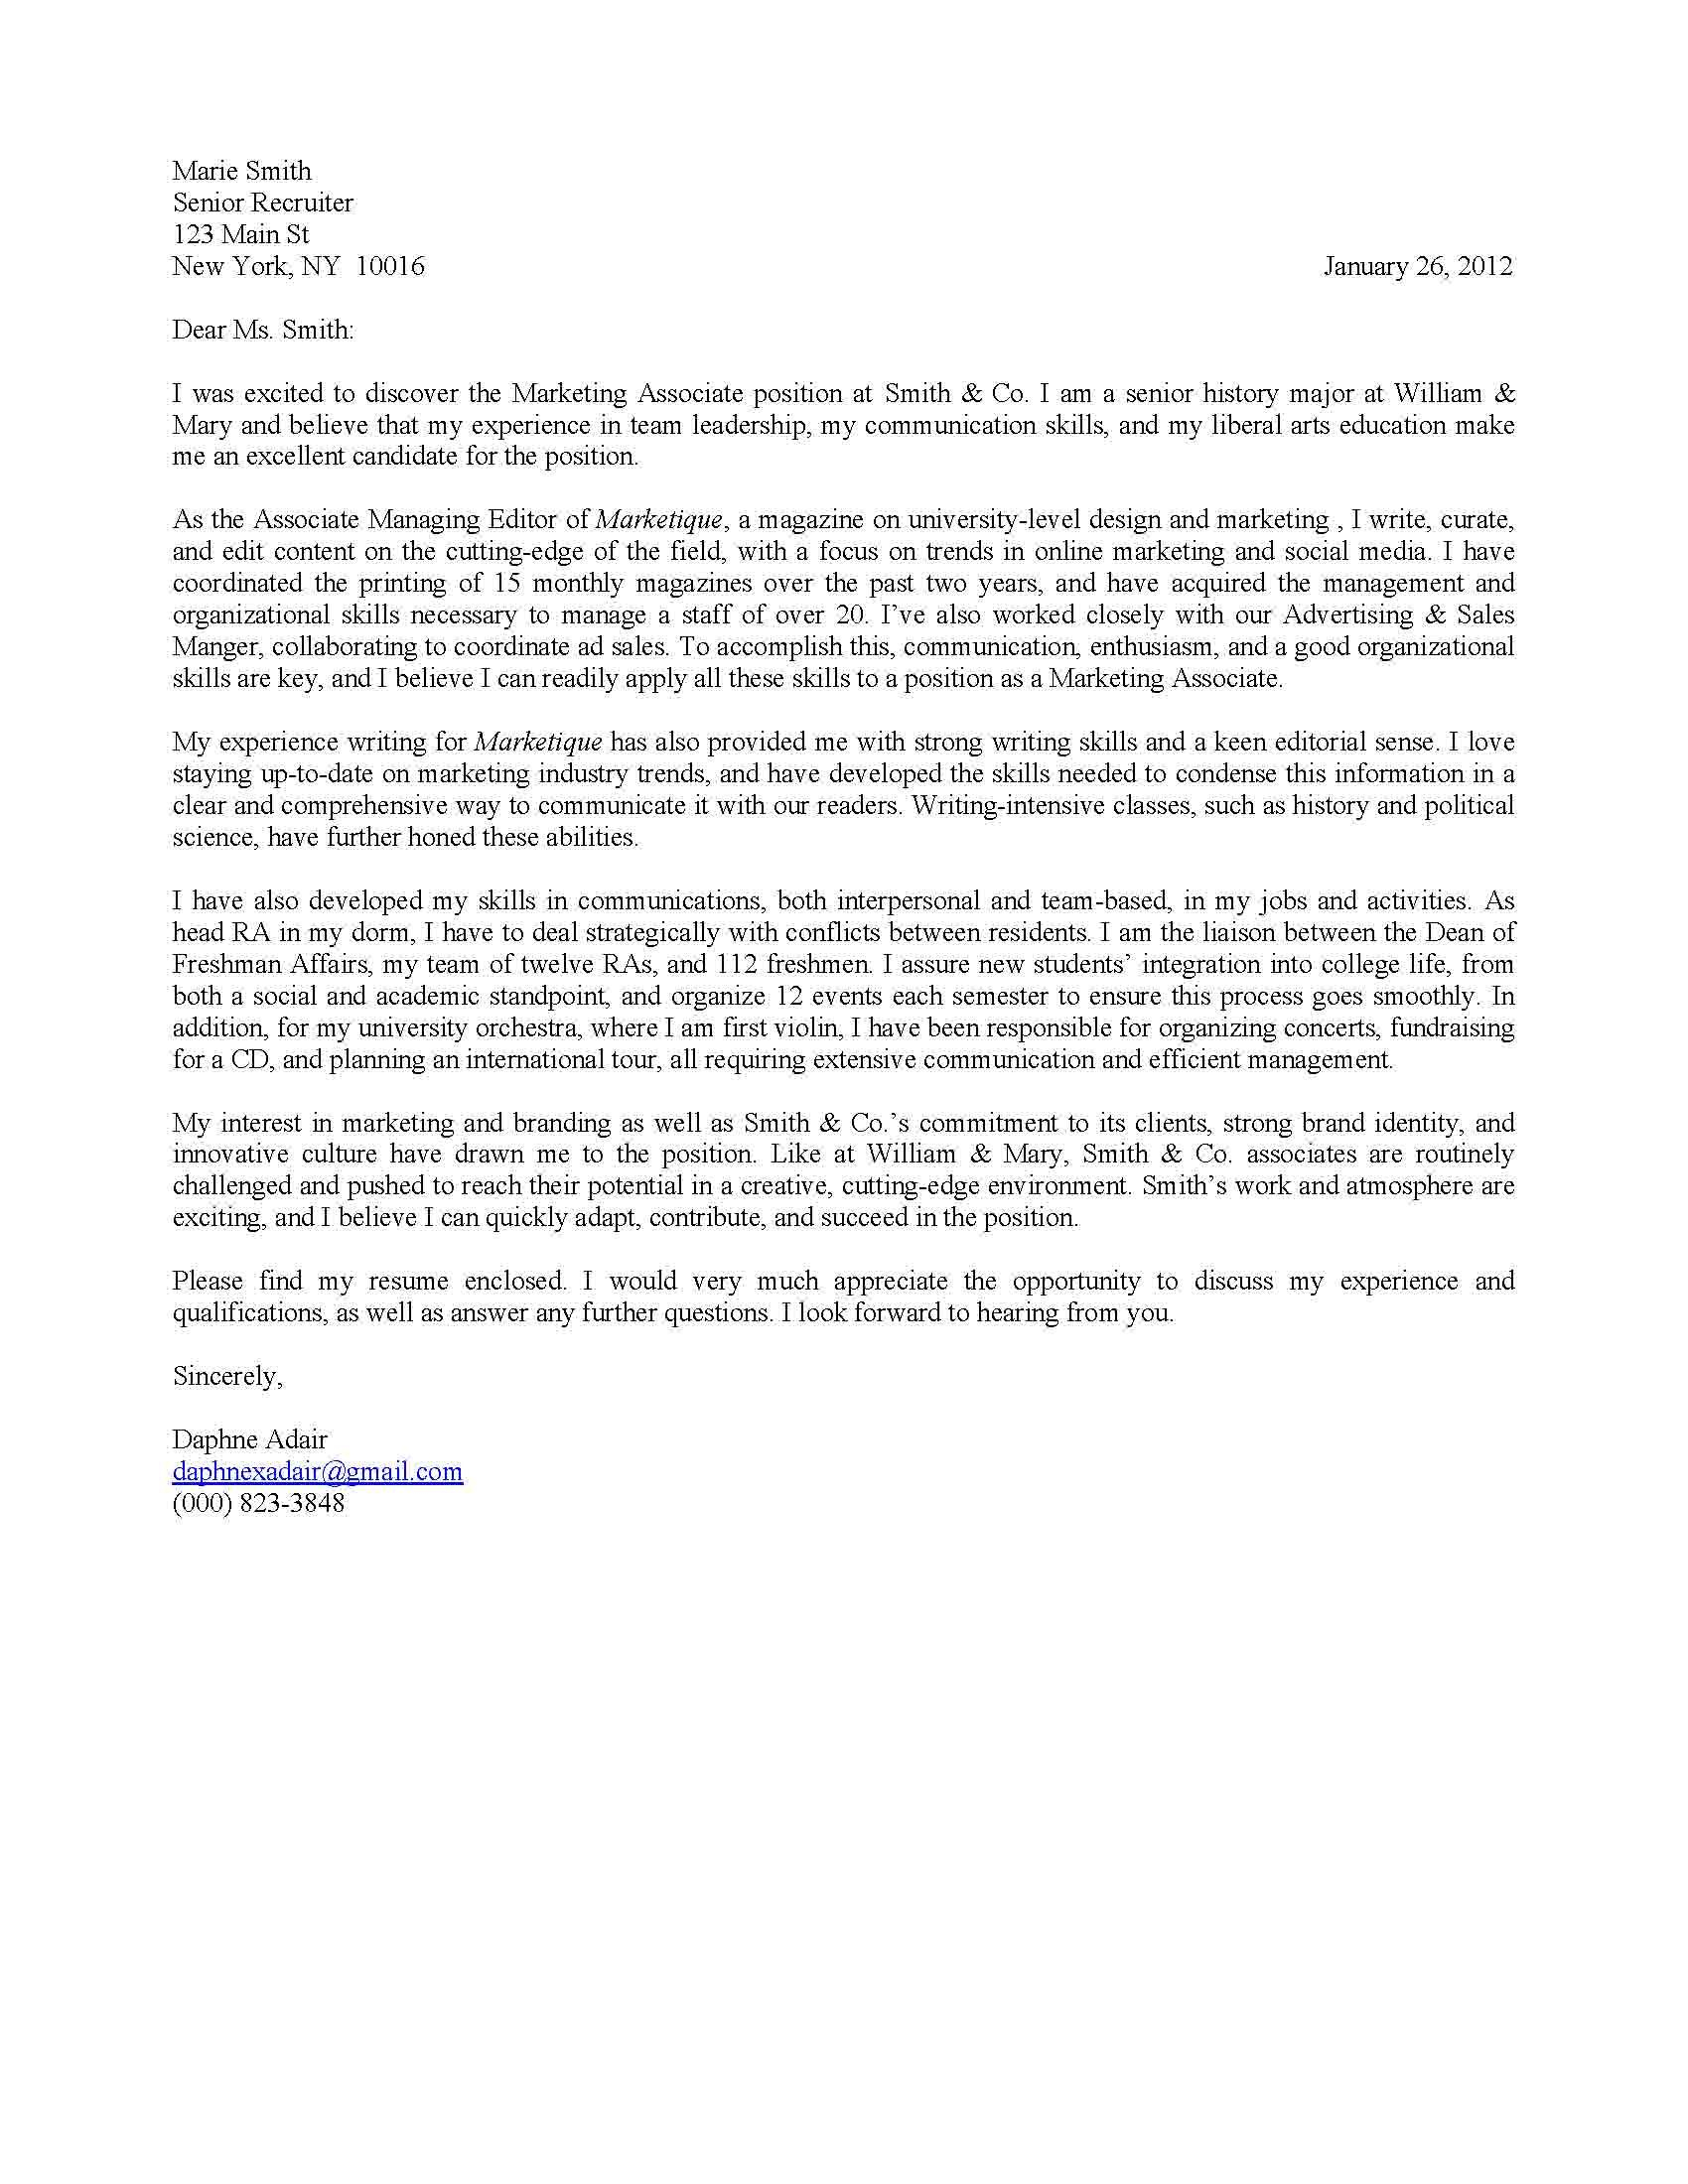 Information Technology Cover Letter Template - 5 Steps to Crafting A Killer Cover Letter for the Job Seeking